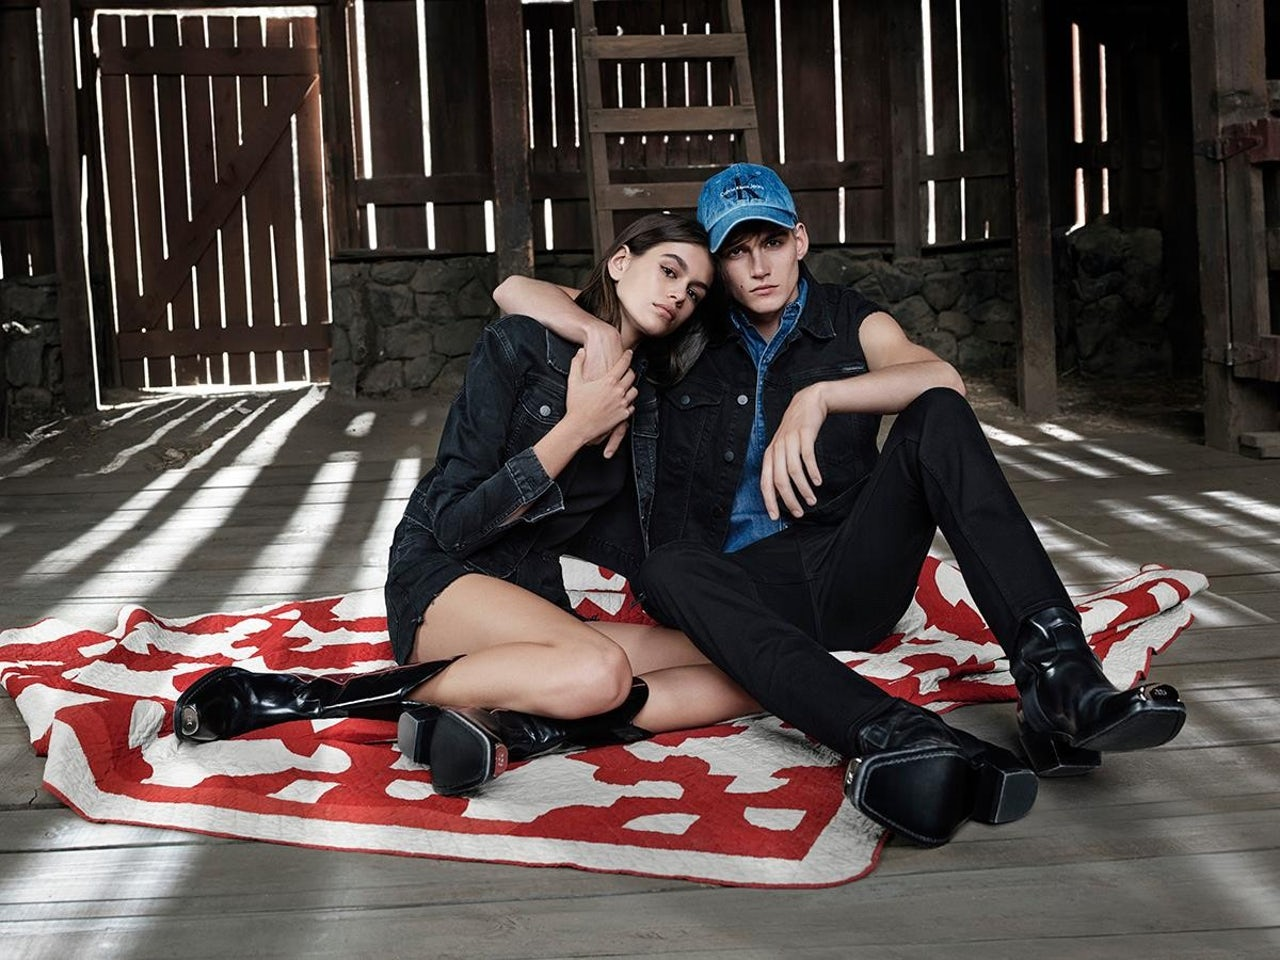 Models Kaia and Presley Gerber in the Calvin Klein family barn.